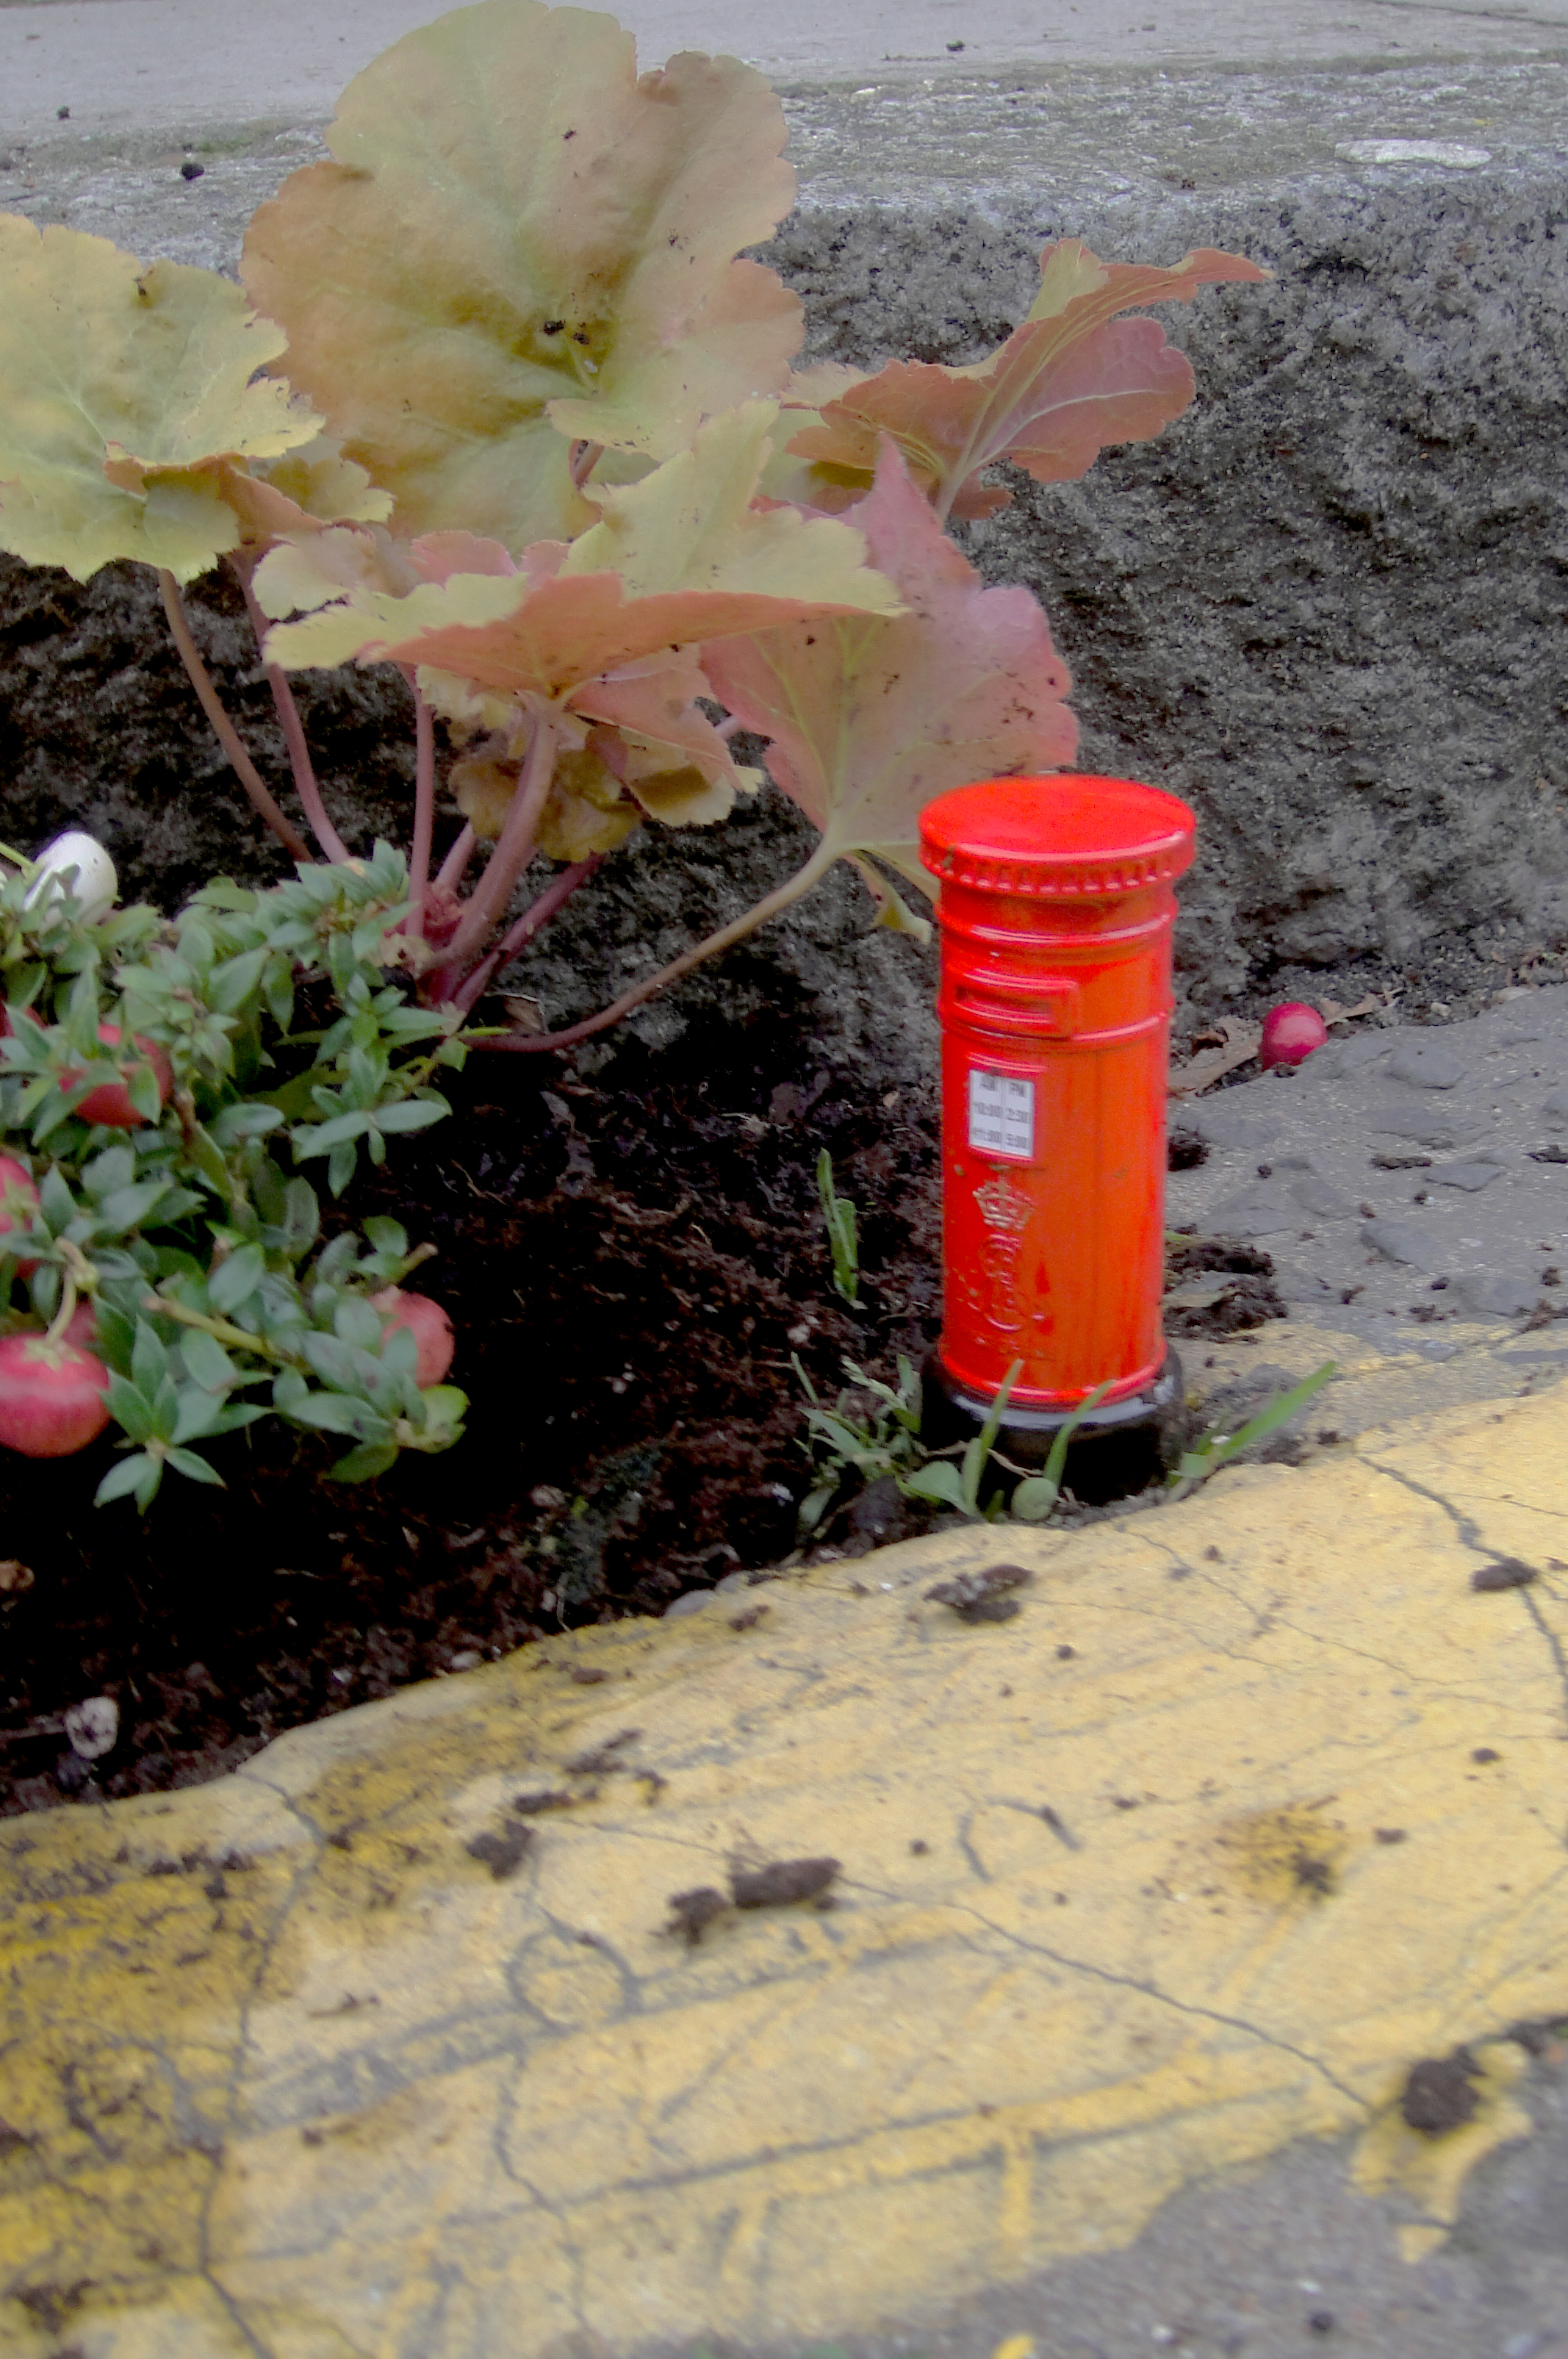 pothole-garden-royal-post-post-box-east-london-cu.jpg